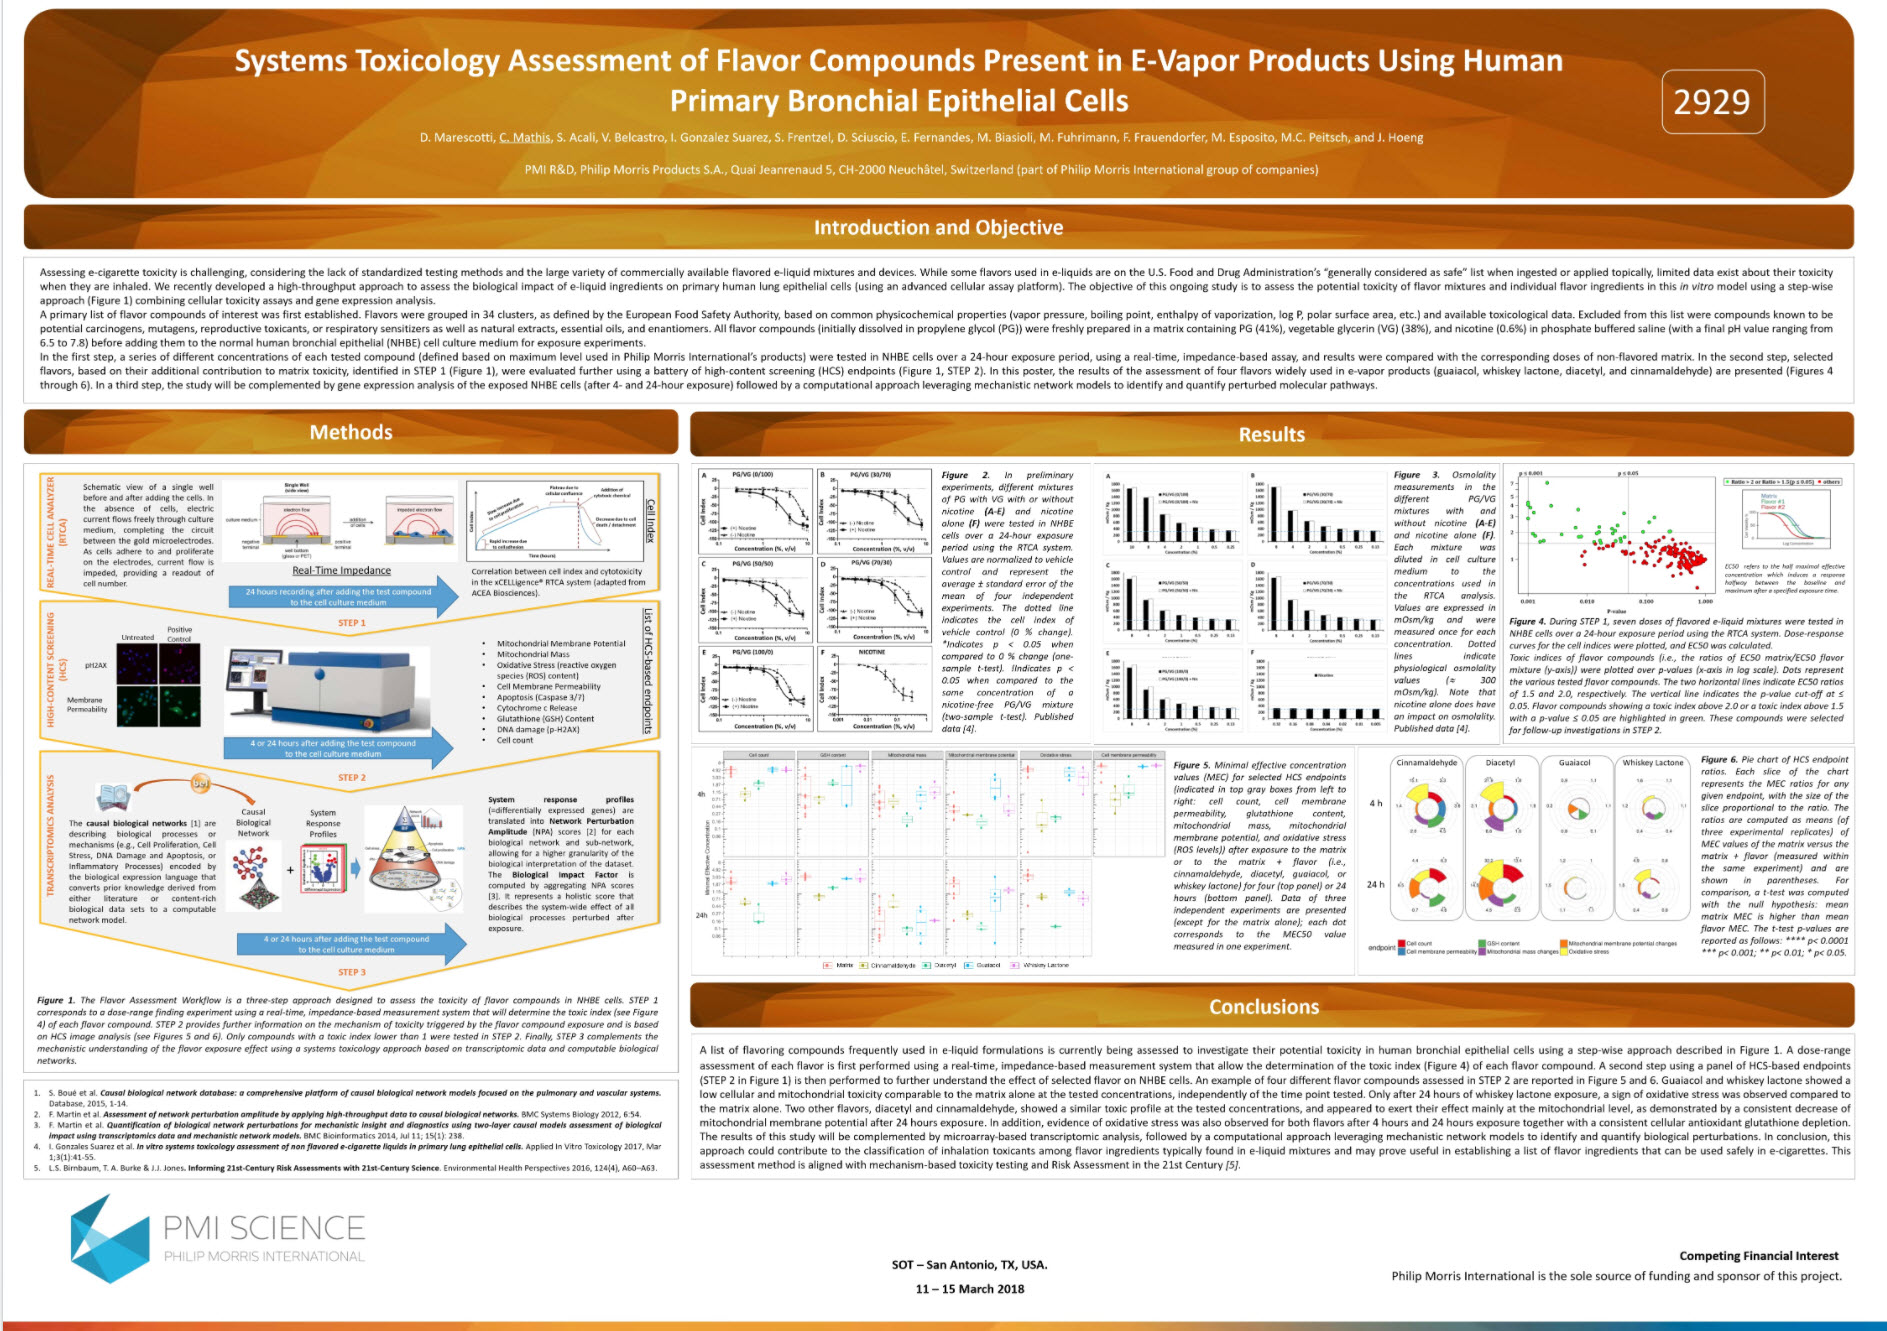 SOT 2018_CMathis_Systems toxicology assessment of flavor compounds_Screenshot